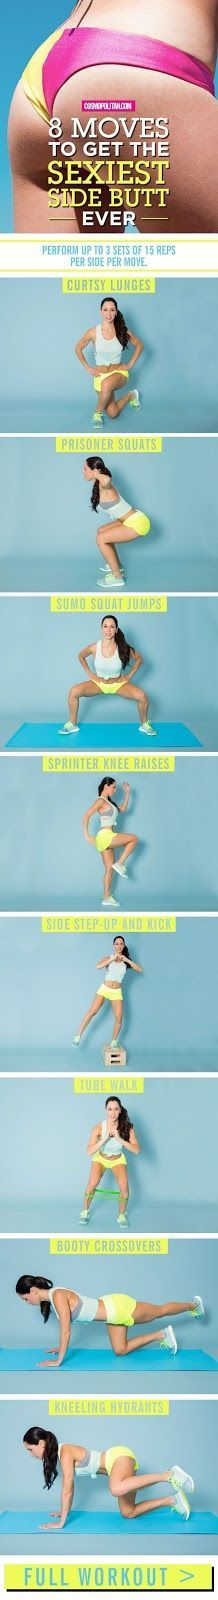 8 moves to get that great sexy side butt. No more saddle bags! www.connectthedotsginger.com